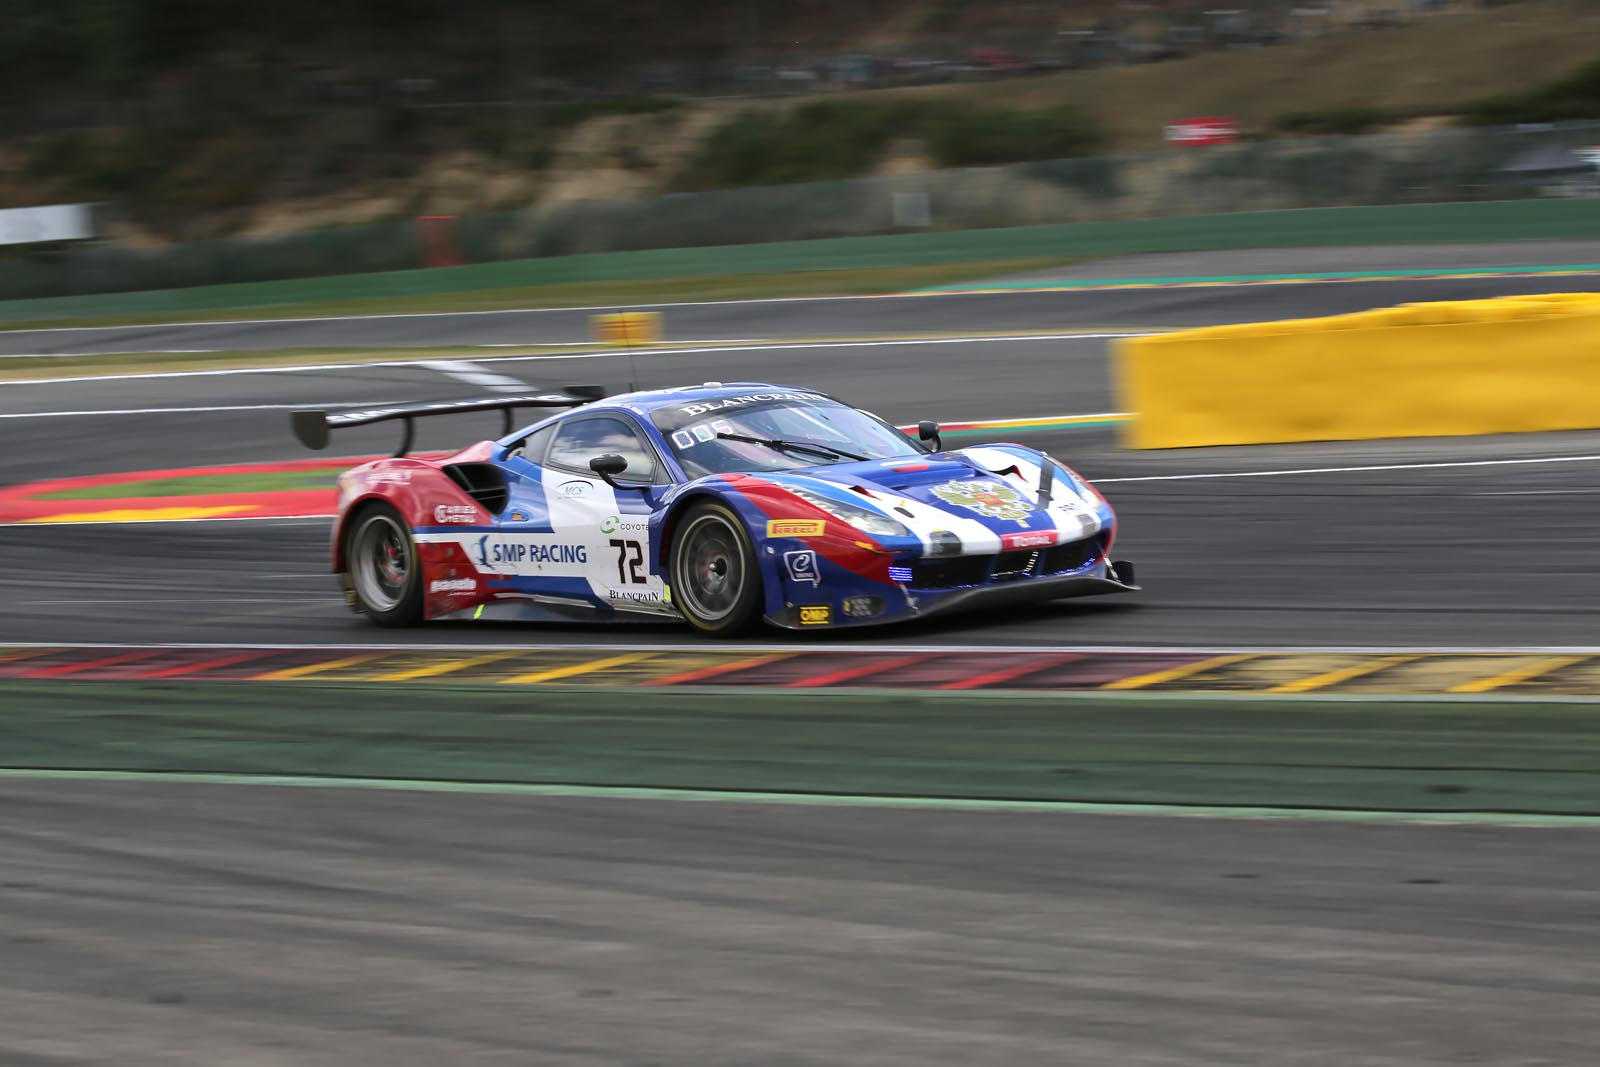 24 hours of Spa. SMP Racing